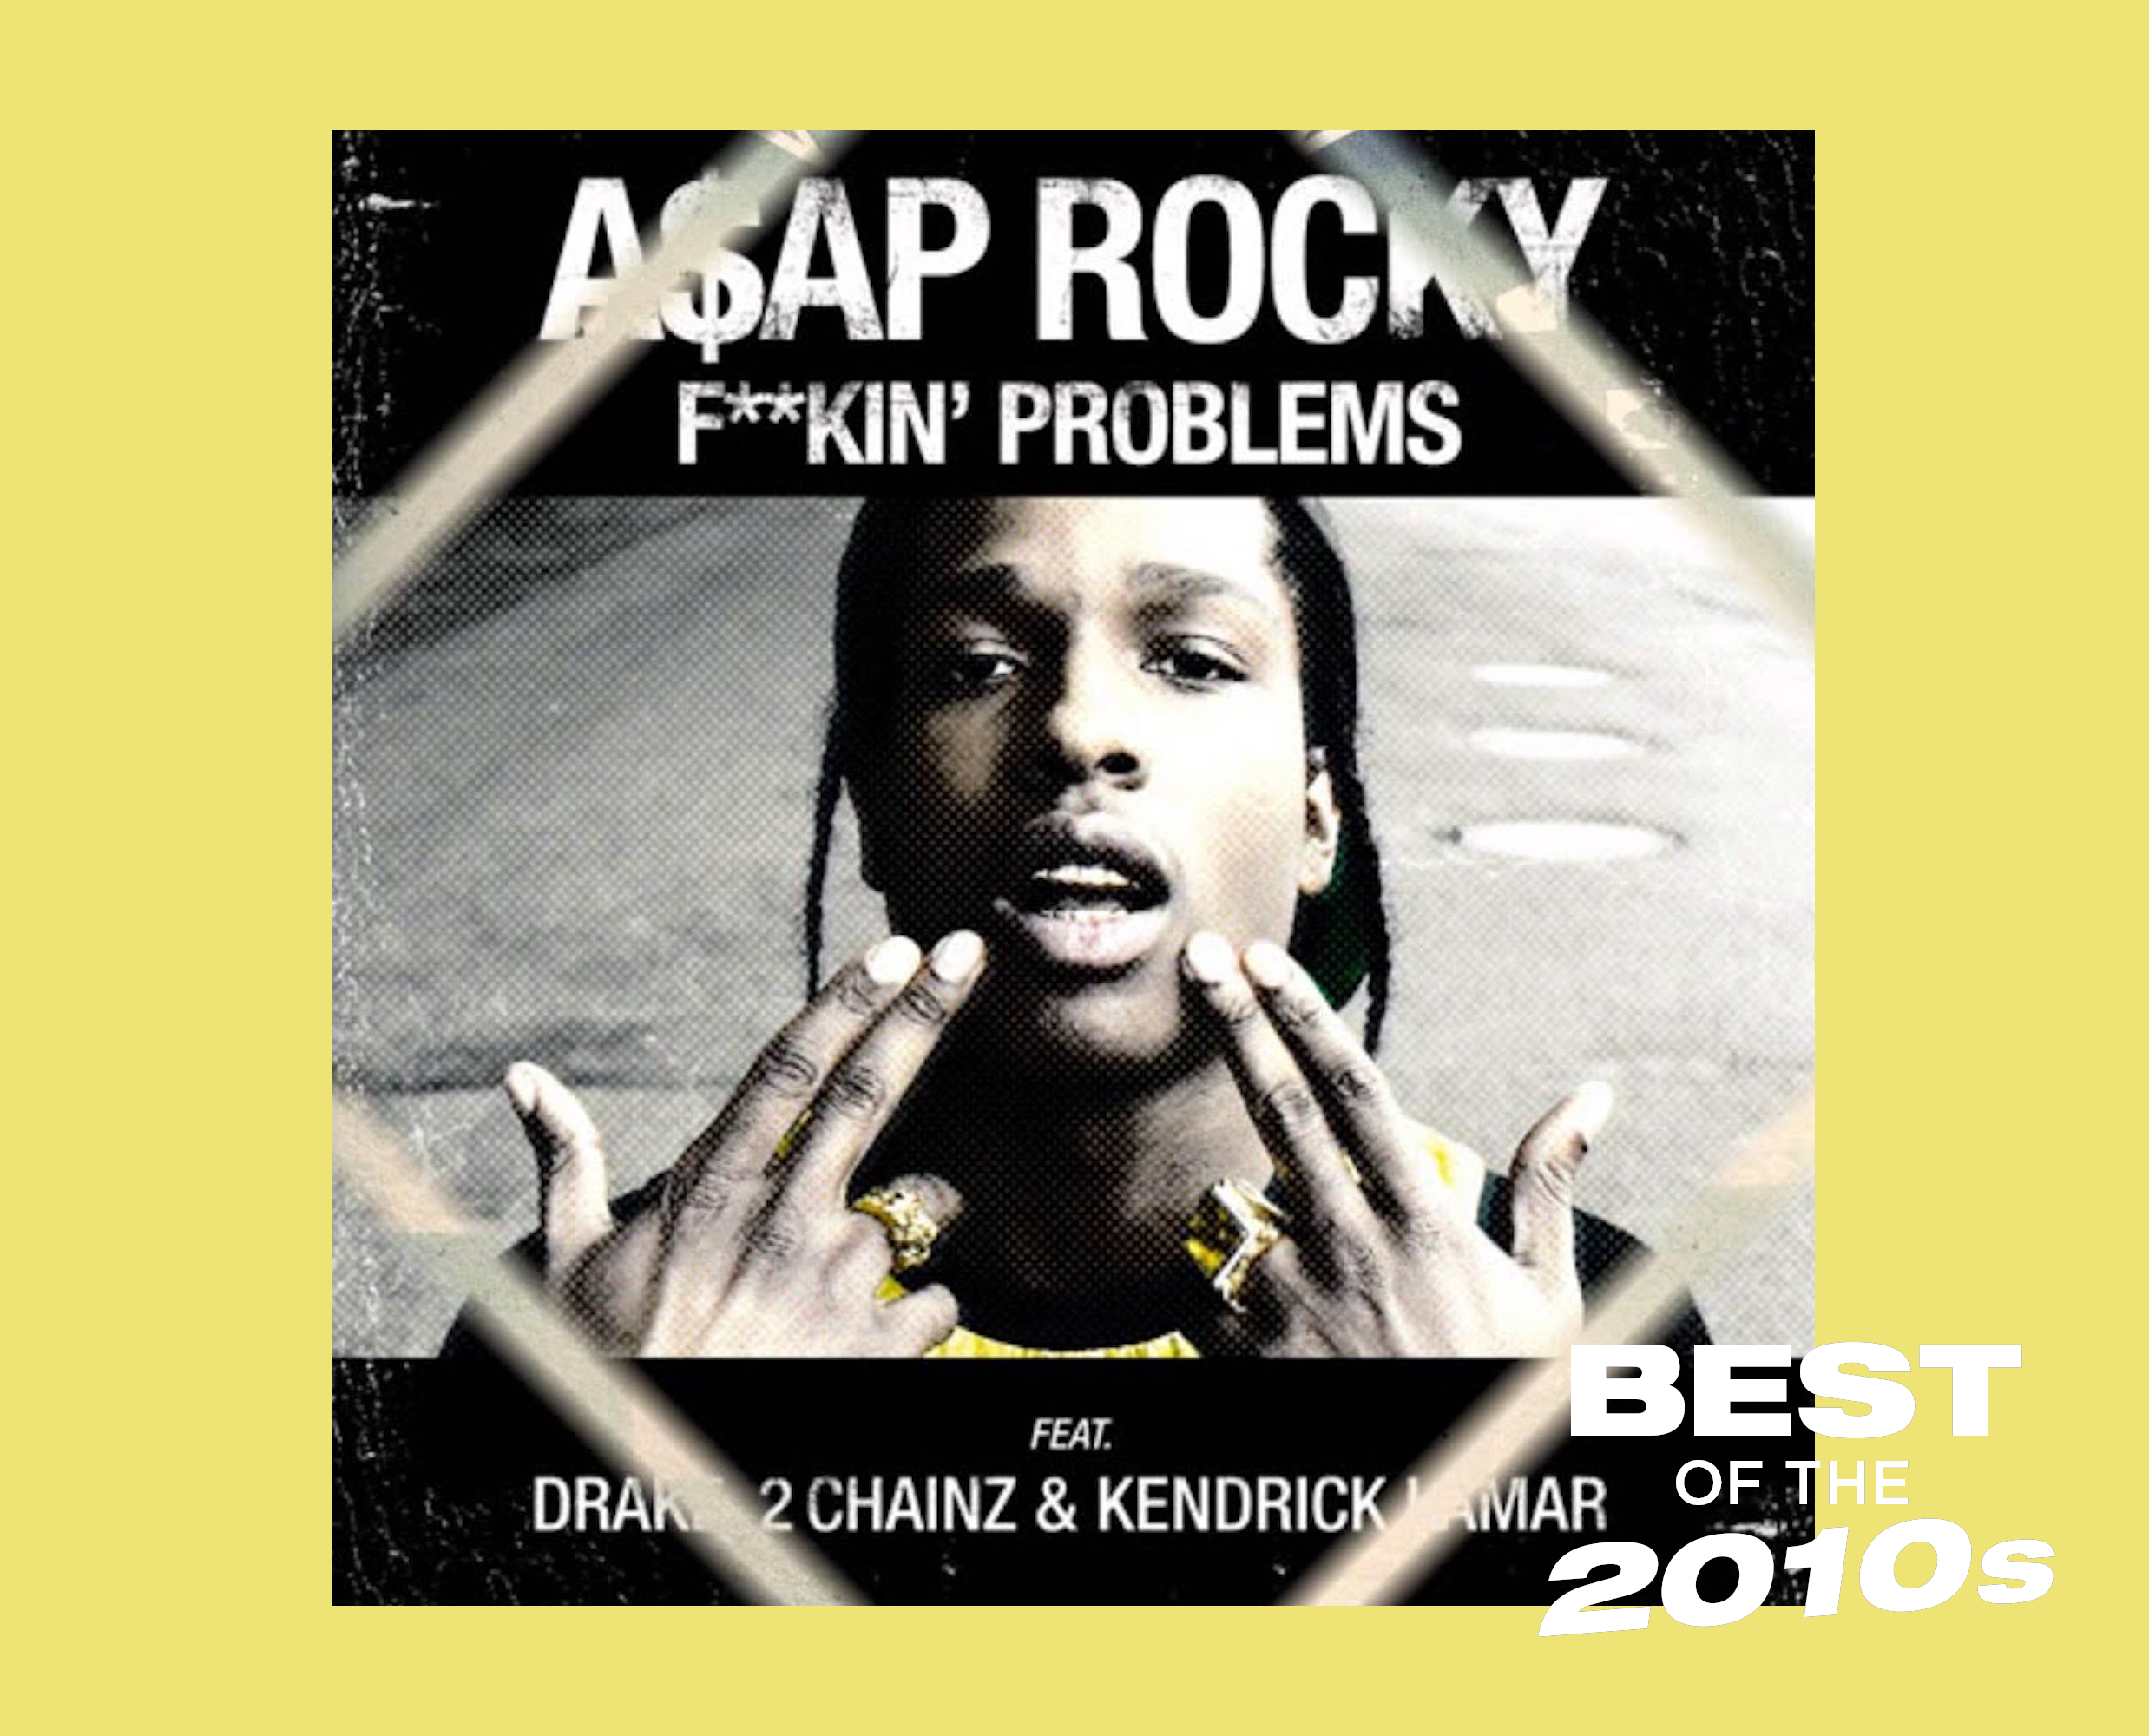 asap rocky fuckin problems artwork